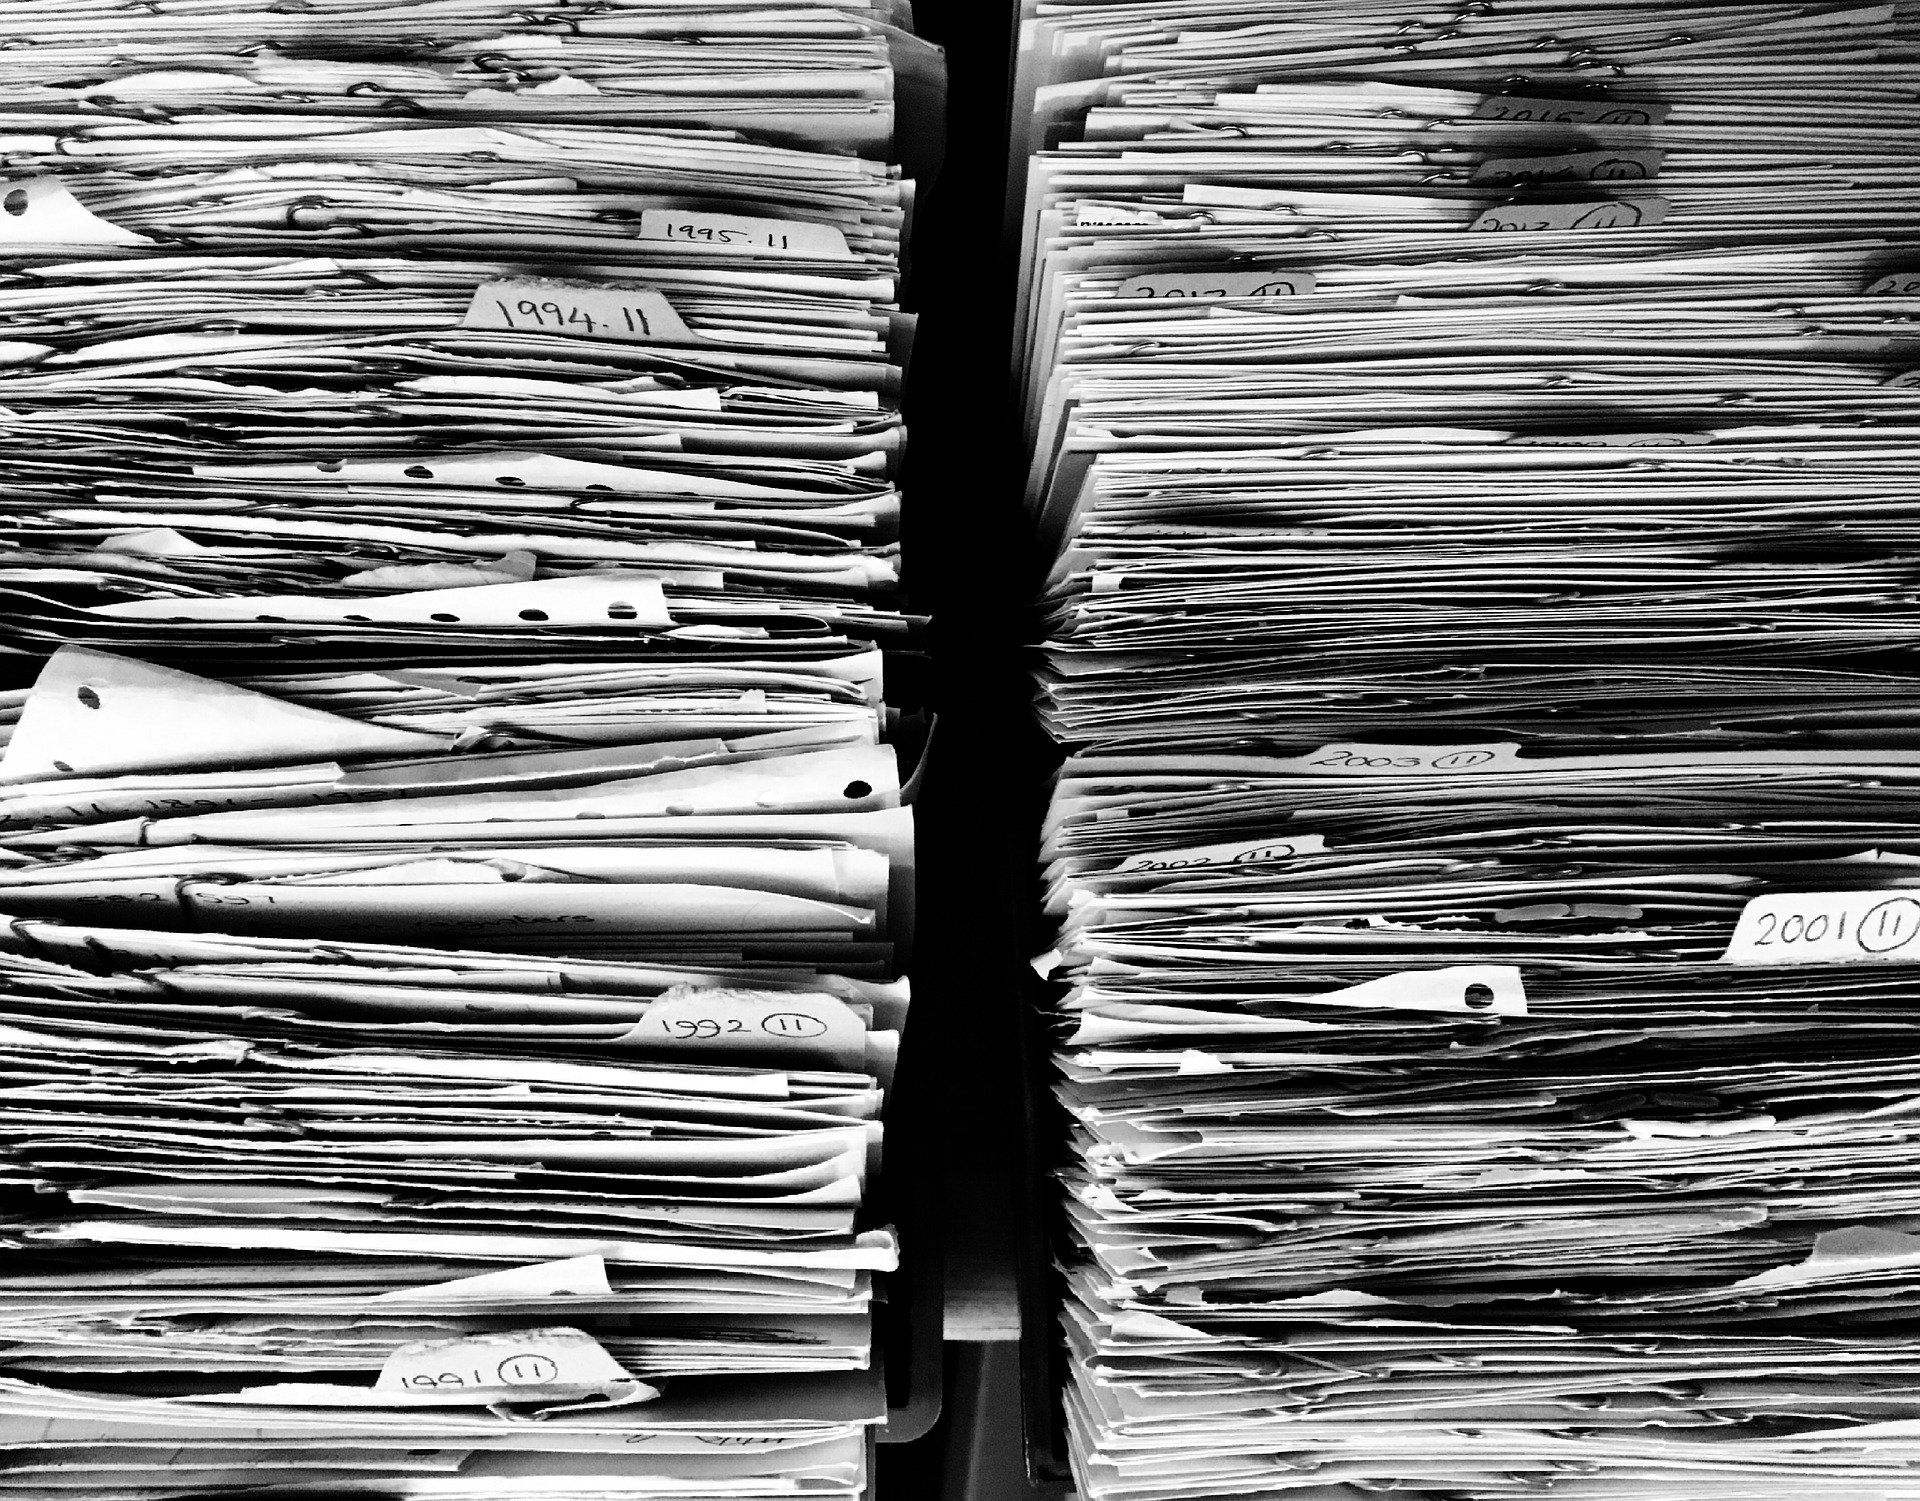 Stacks of Immigration Forms